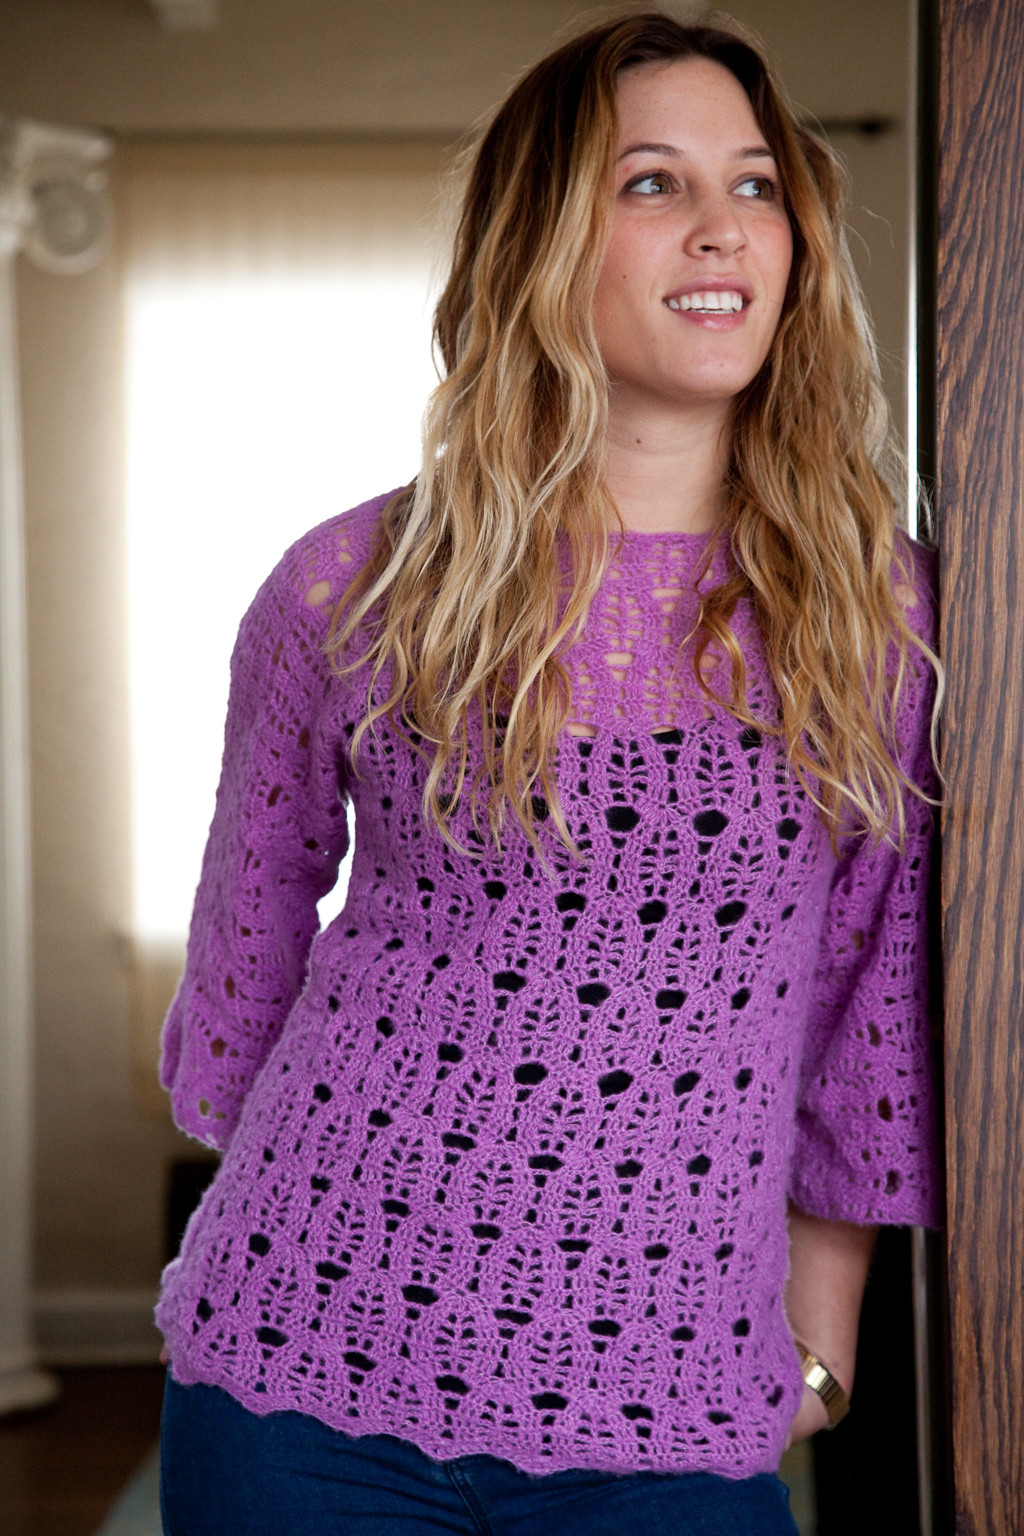 Crochet Sweater Patterns Fresh Cute Crochet Chat Custom Crocheted Sweaters and Giveaway Of Adorable 40 Ideas Crochet Sweater Patterns